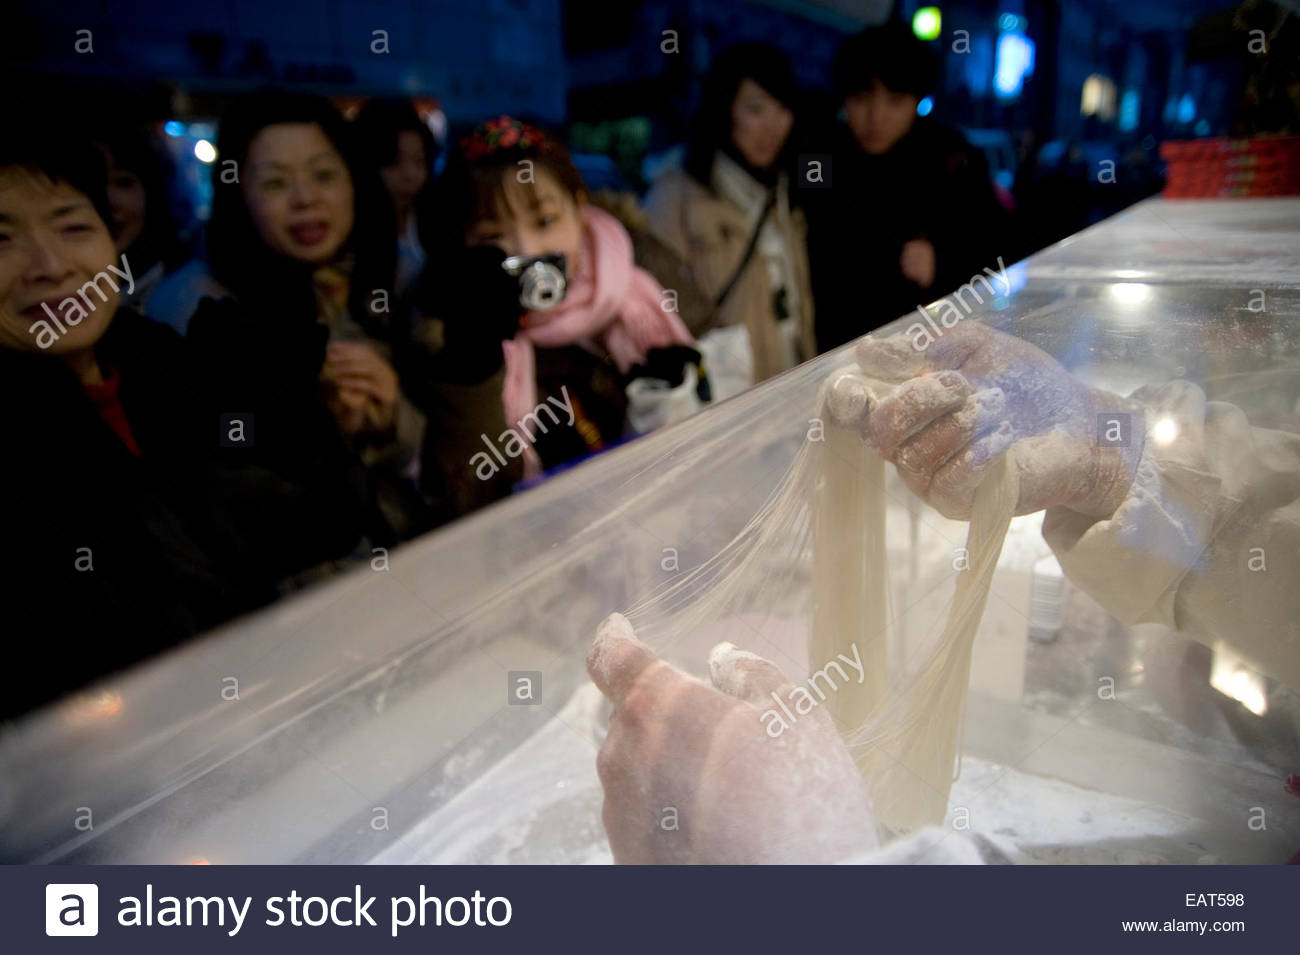 A baker makes 'Ggul Tae Reh,' or candy, in the Insadong neighborhood. Stock Photo